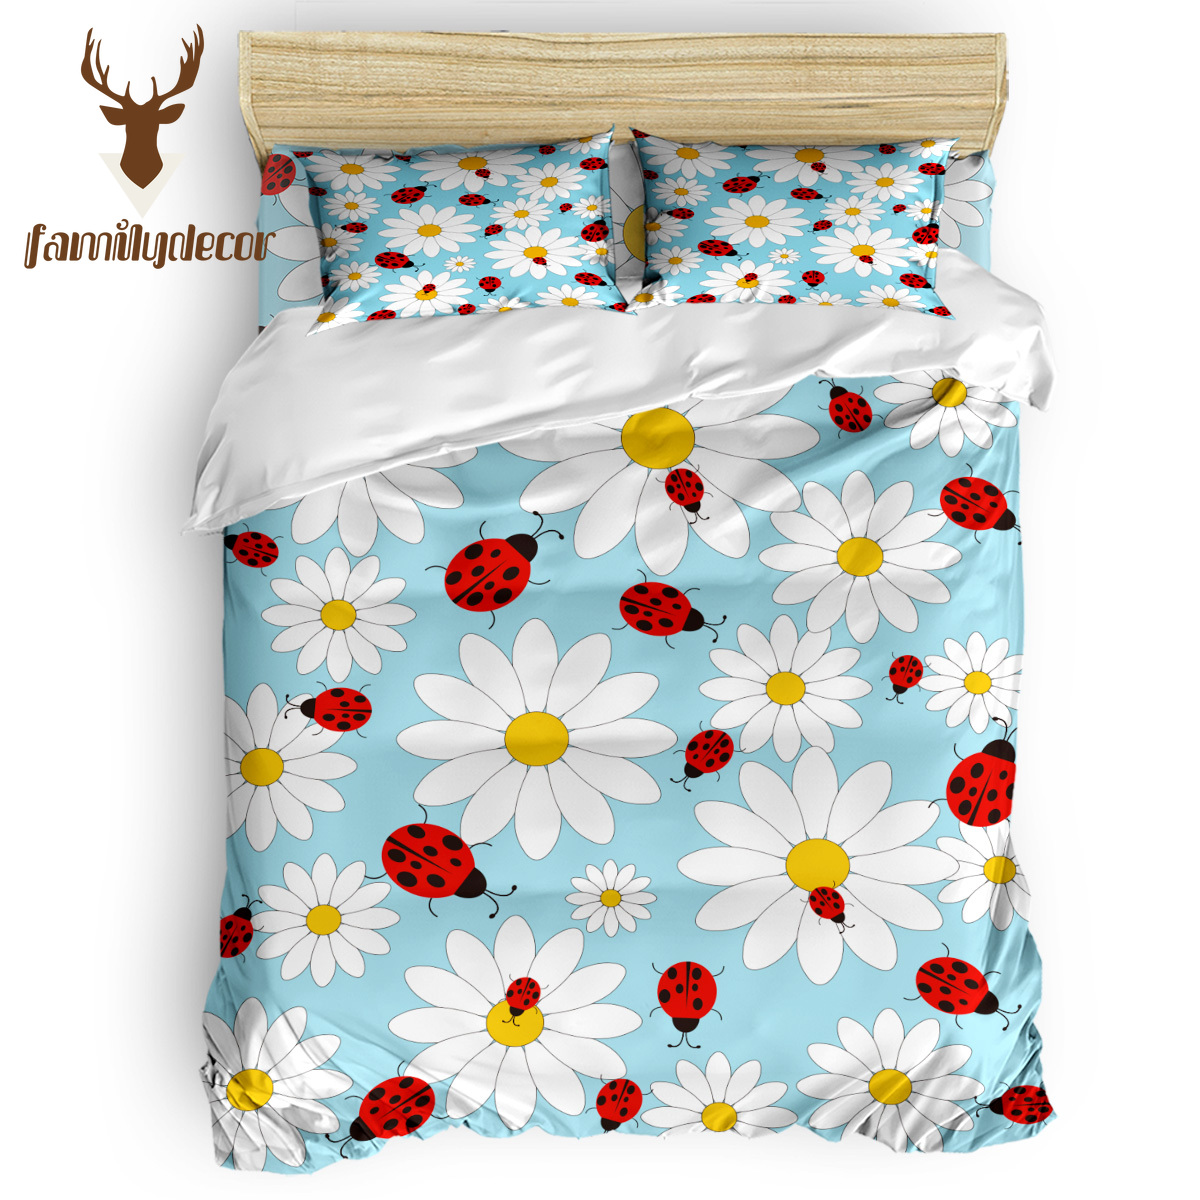 FamilyDecor Ladybug Daisy Bedding Set Luxury Comforter Bedding Sets 3D King Size Red Blue Cotton DHL Free Shipping